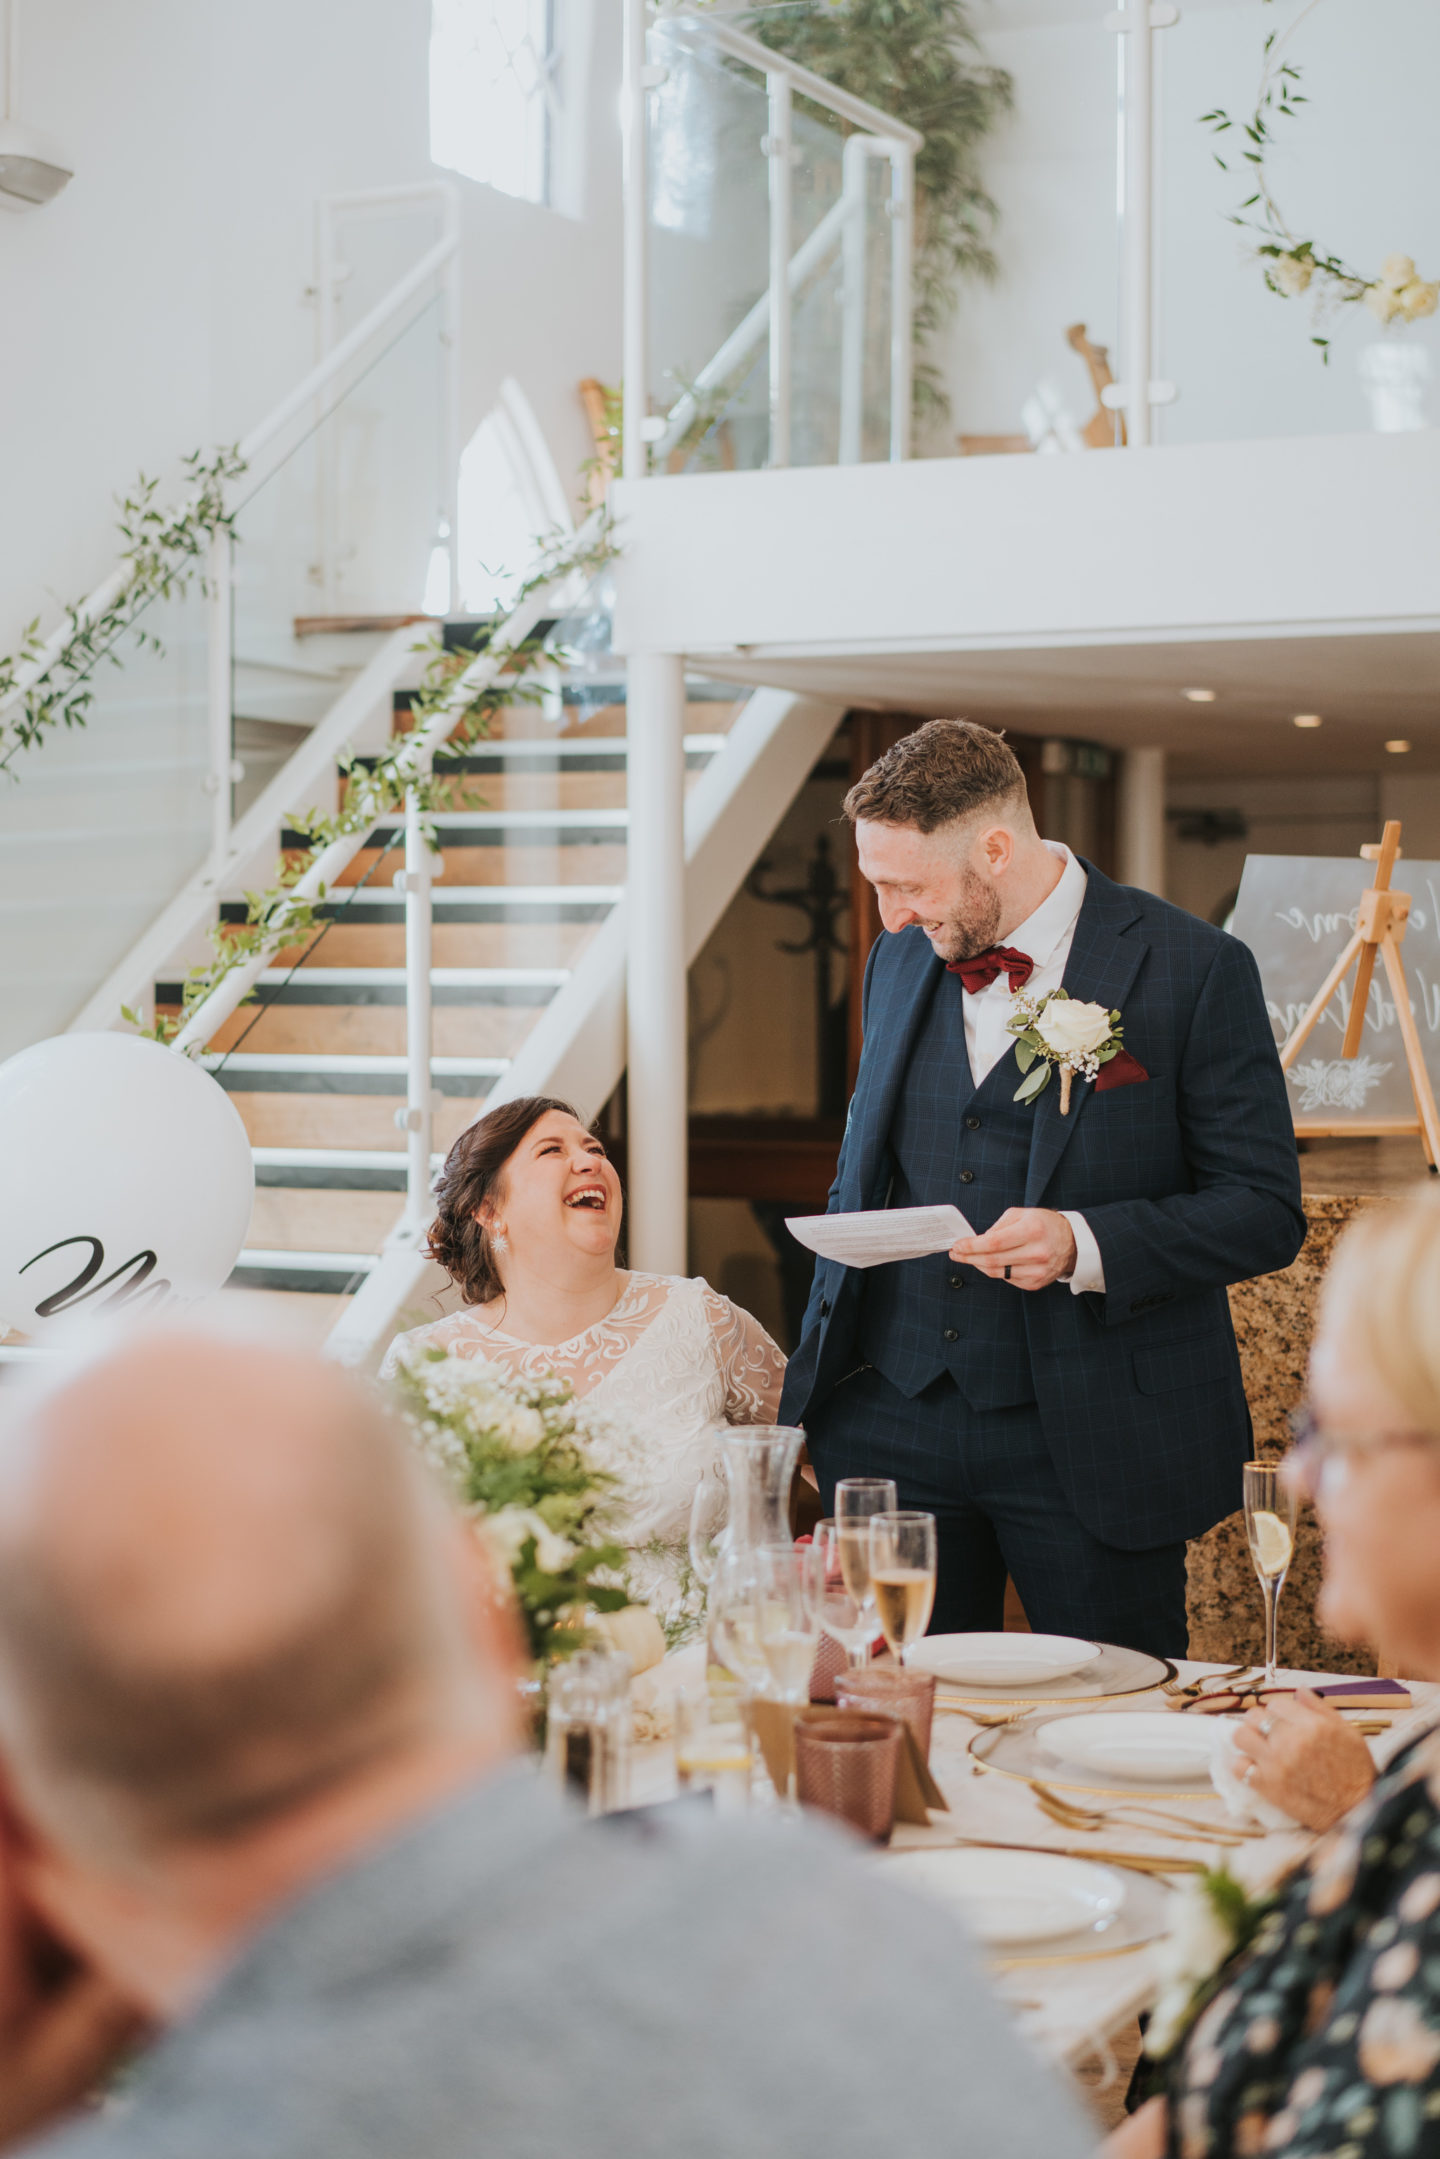 Marry Now Party Later; Intimate Wedding At The Old Parish Rooms